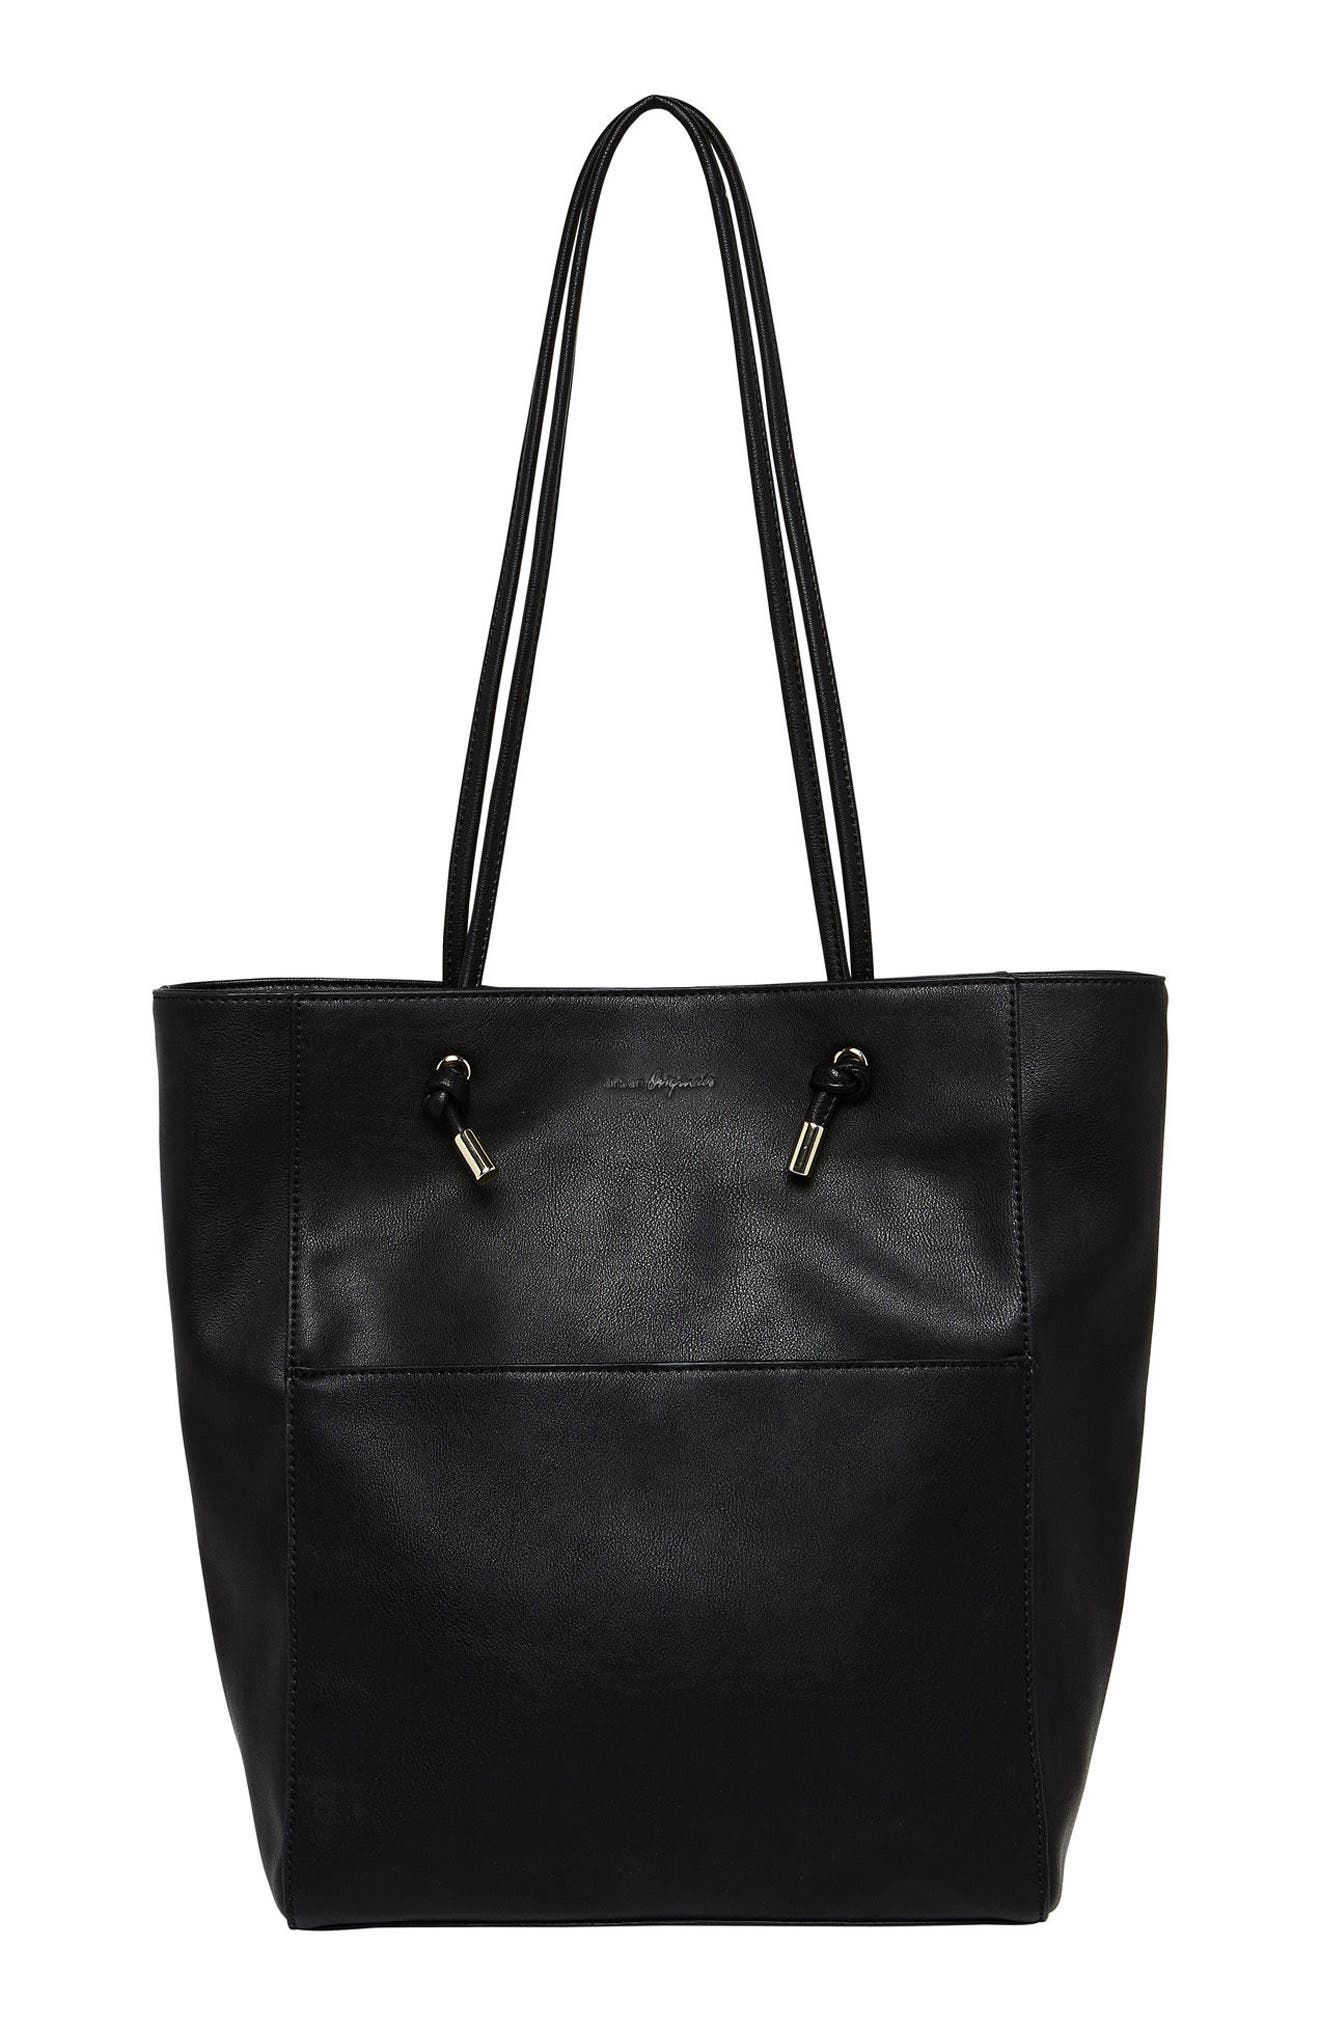 Gods & Goddesses Vegan Leather Tote,                         Main,                         color, Black